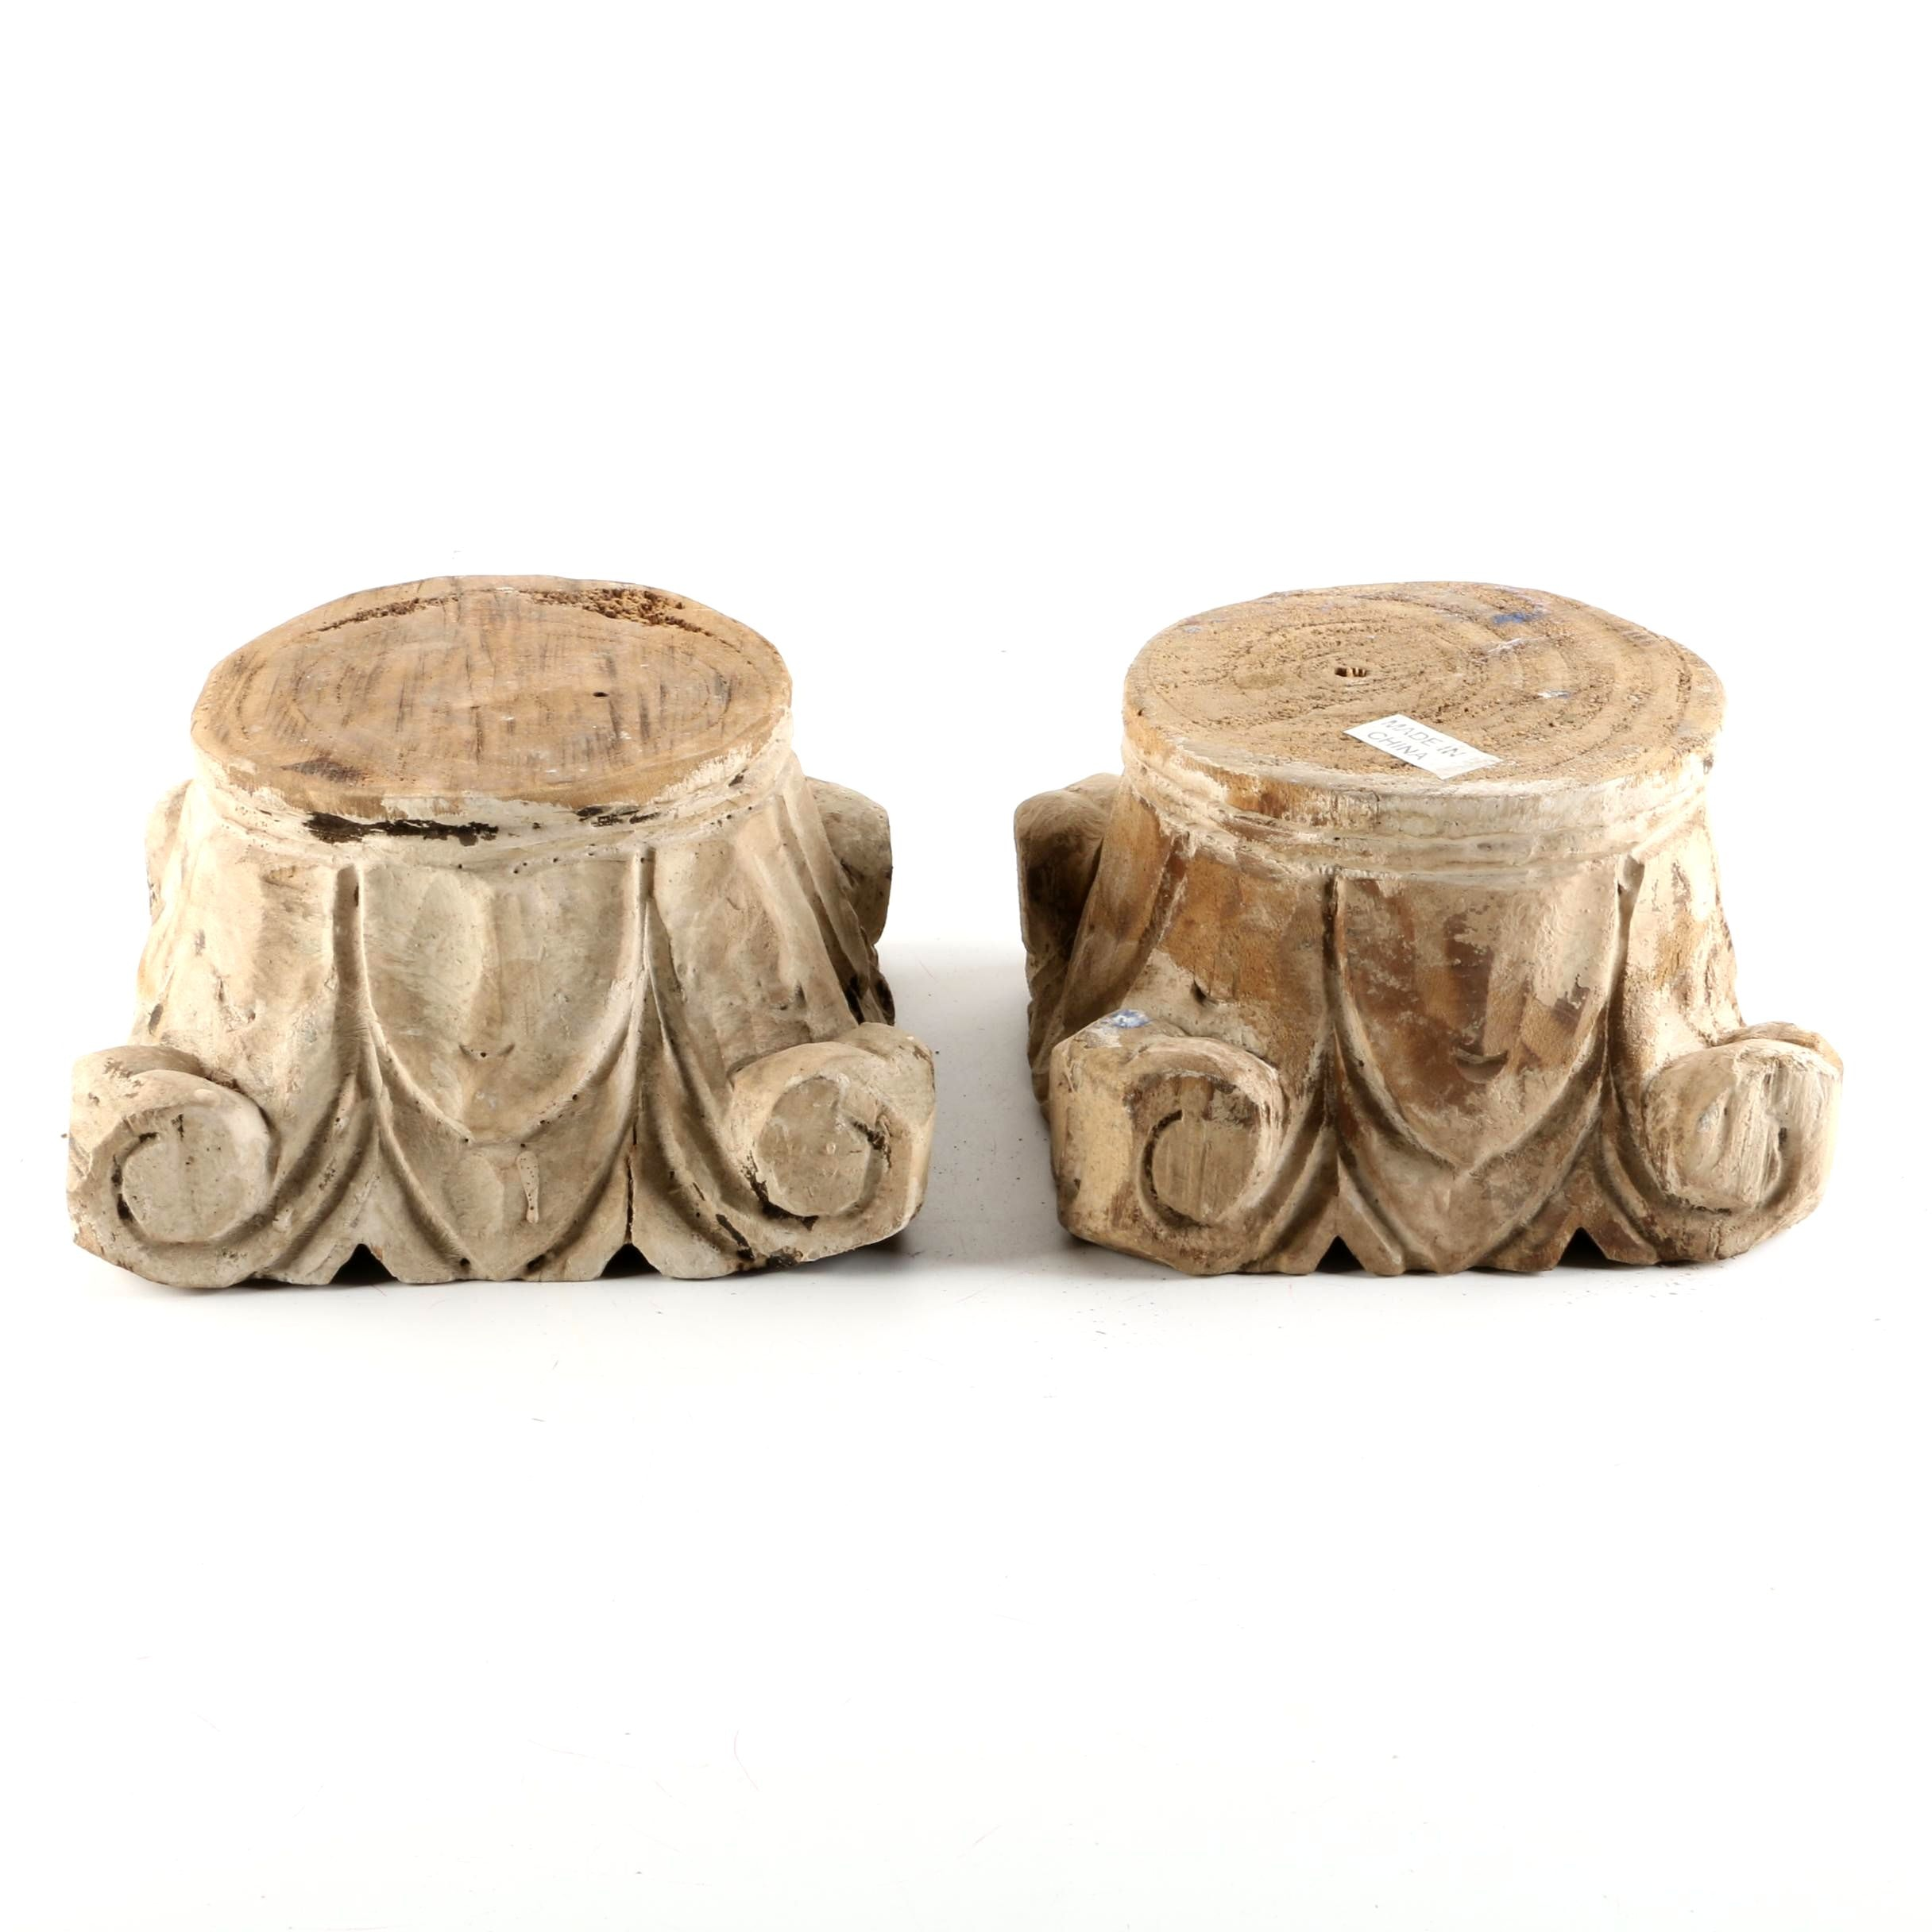 Ionic Style Carved Wooden Column Capitals